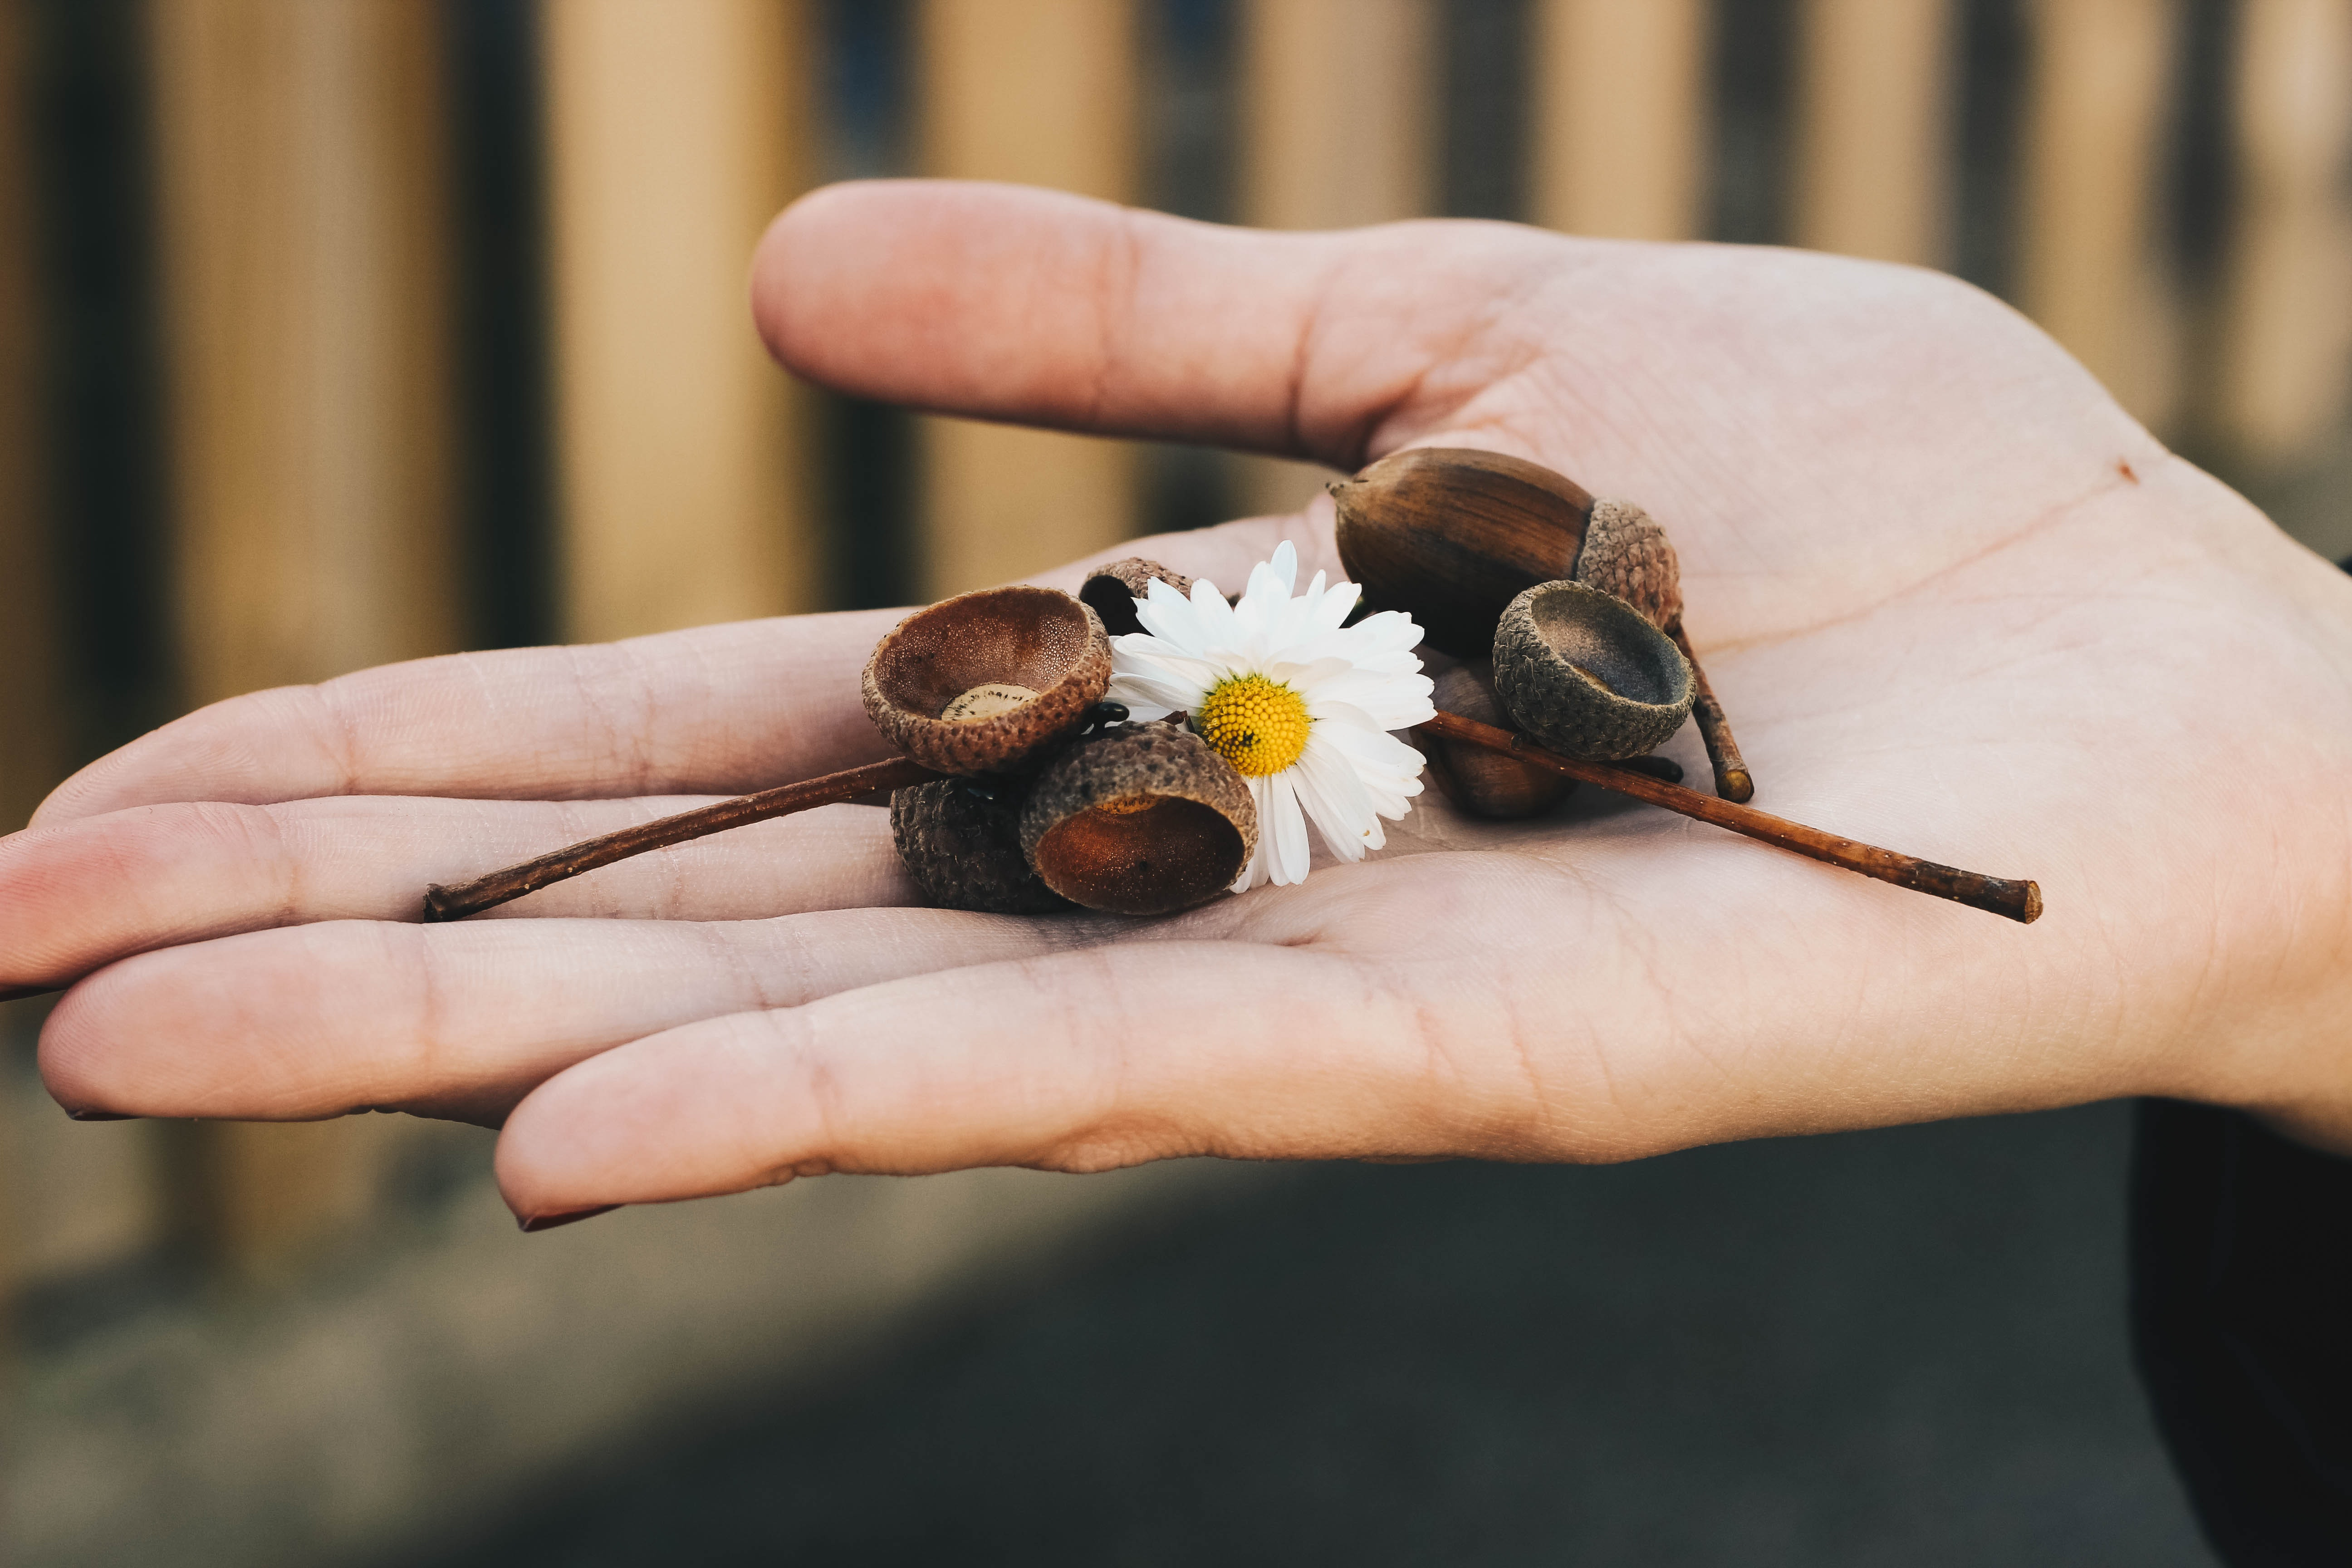 New Free Stock Photo Of Person, Hand, Flower